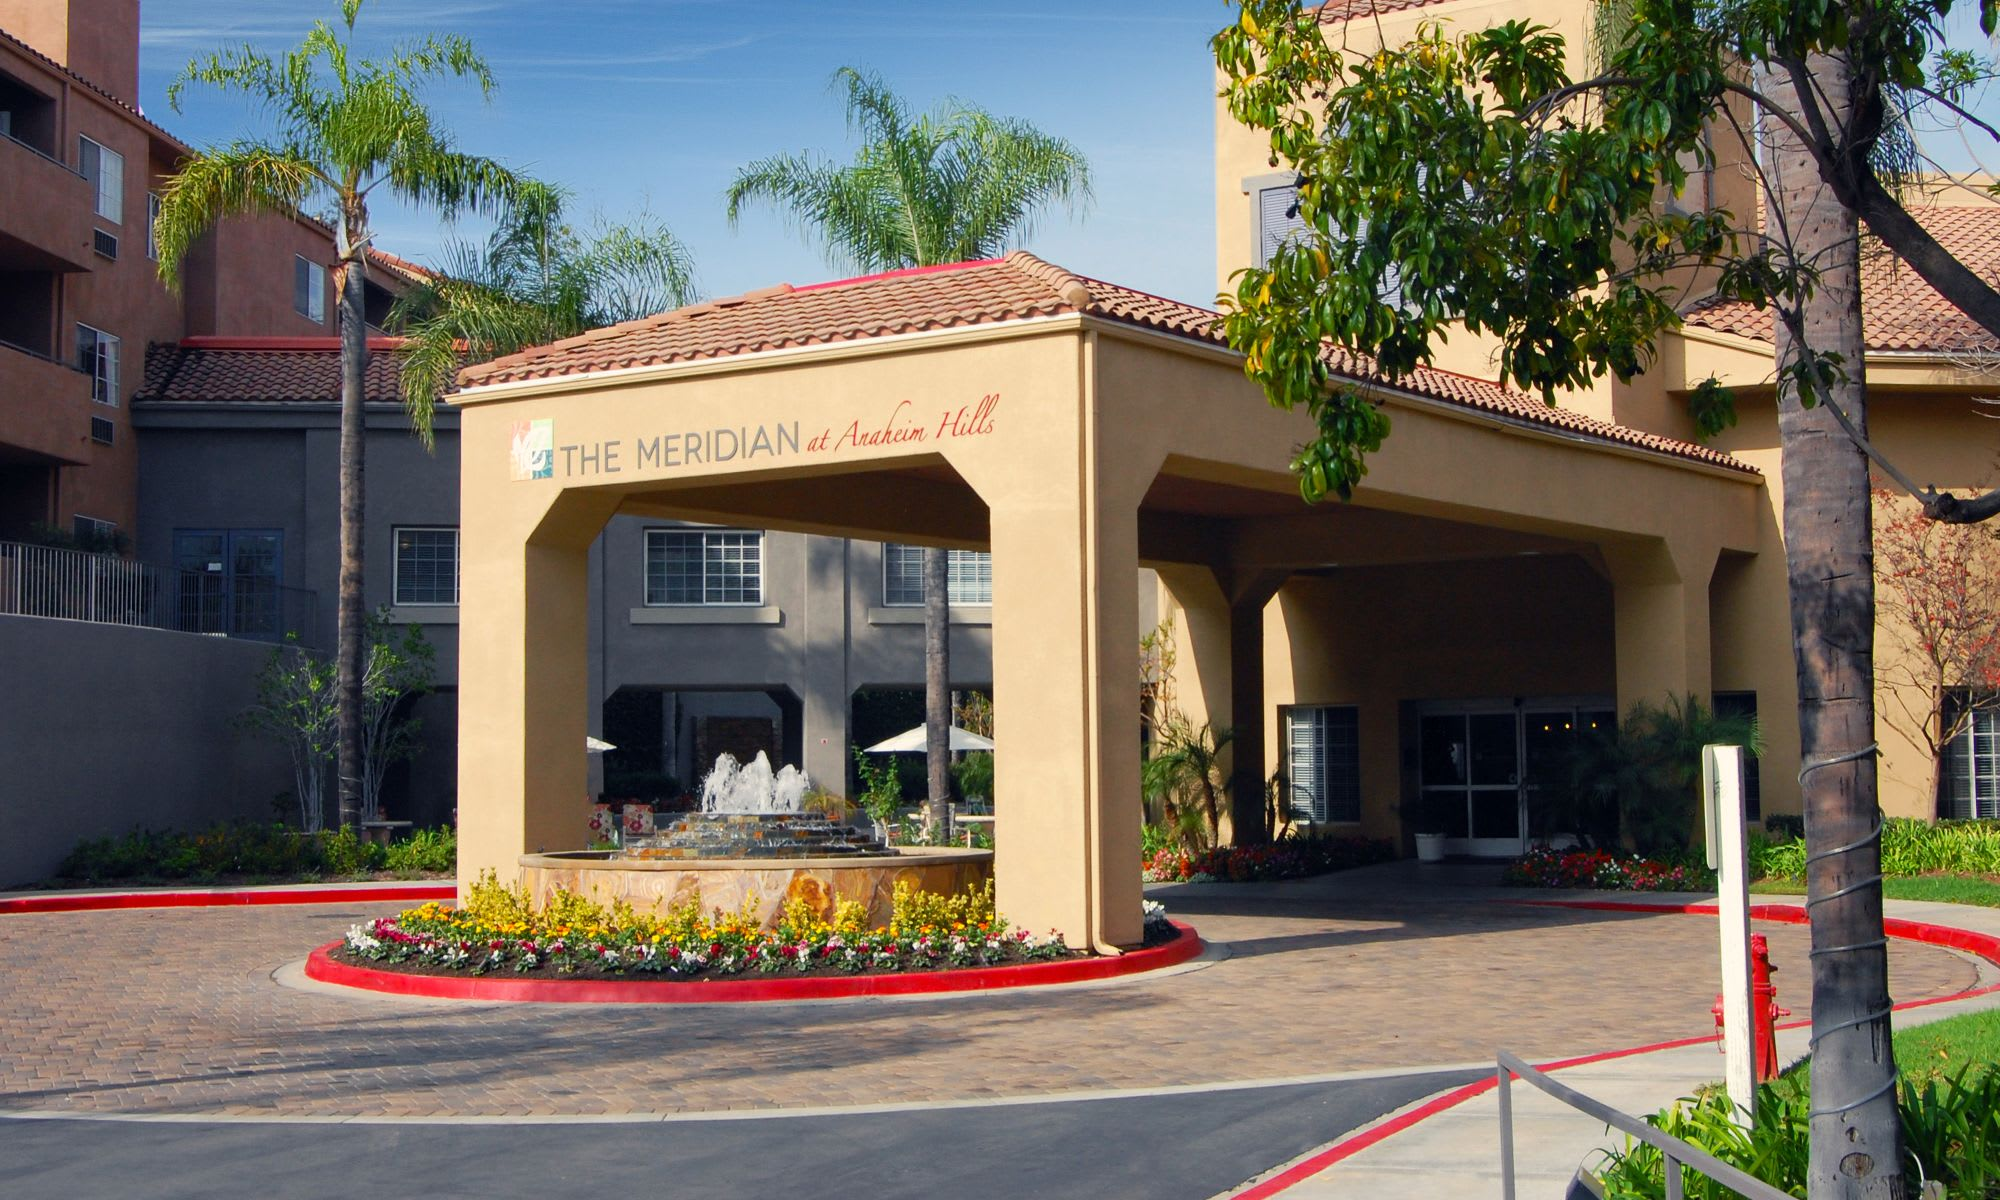 The Meridian at Anaheim Hills front entrance